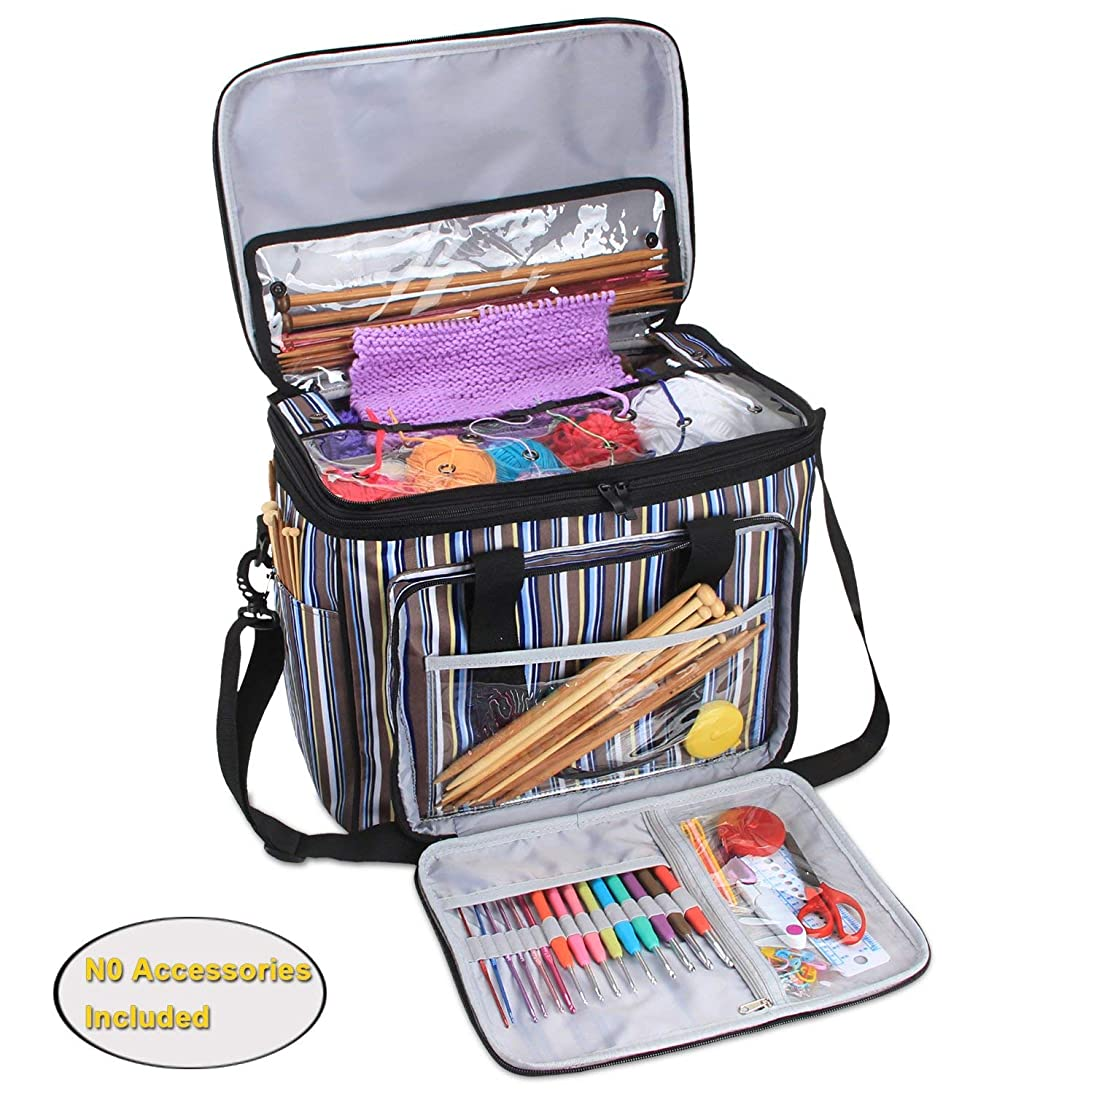 Teamoy Yarn Storage Bag, Knitting Tote Bag Organizer for Crochet Hooks and Supplies, Portable Knitting Yarn Storage Bag with Cover and Inner Divider, Stripes(No Accessories Included)